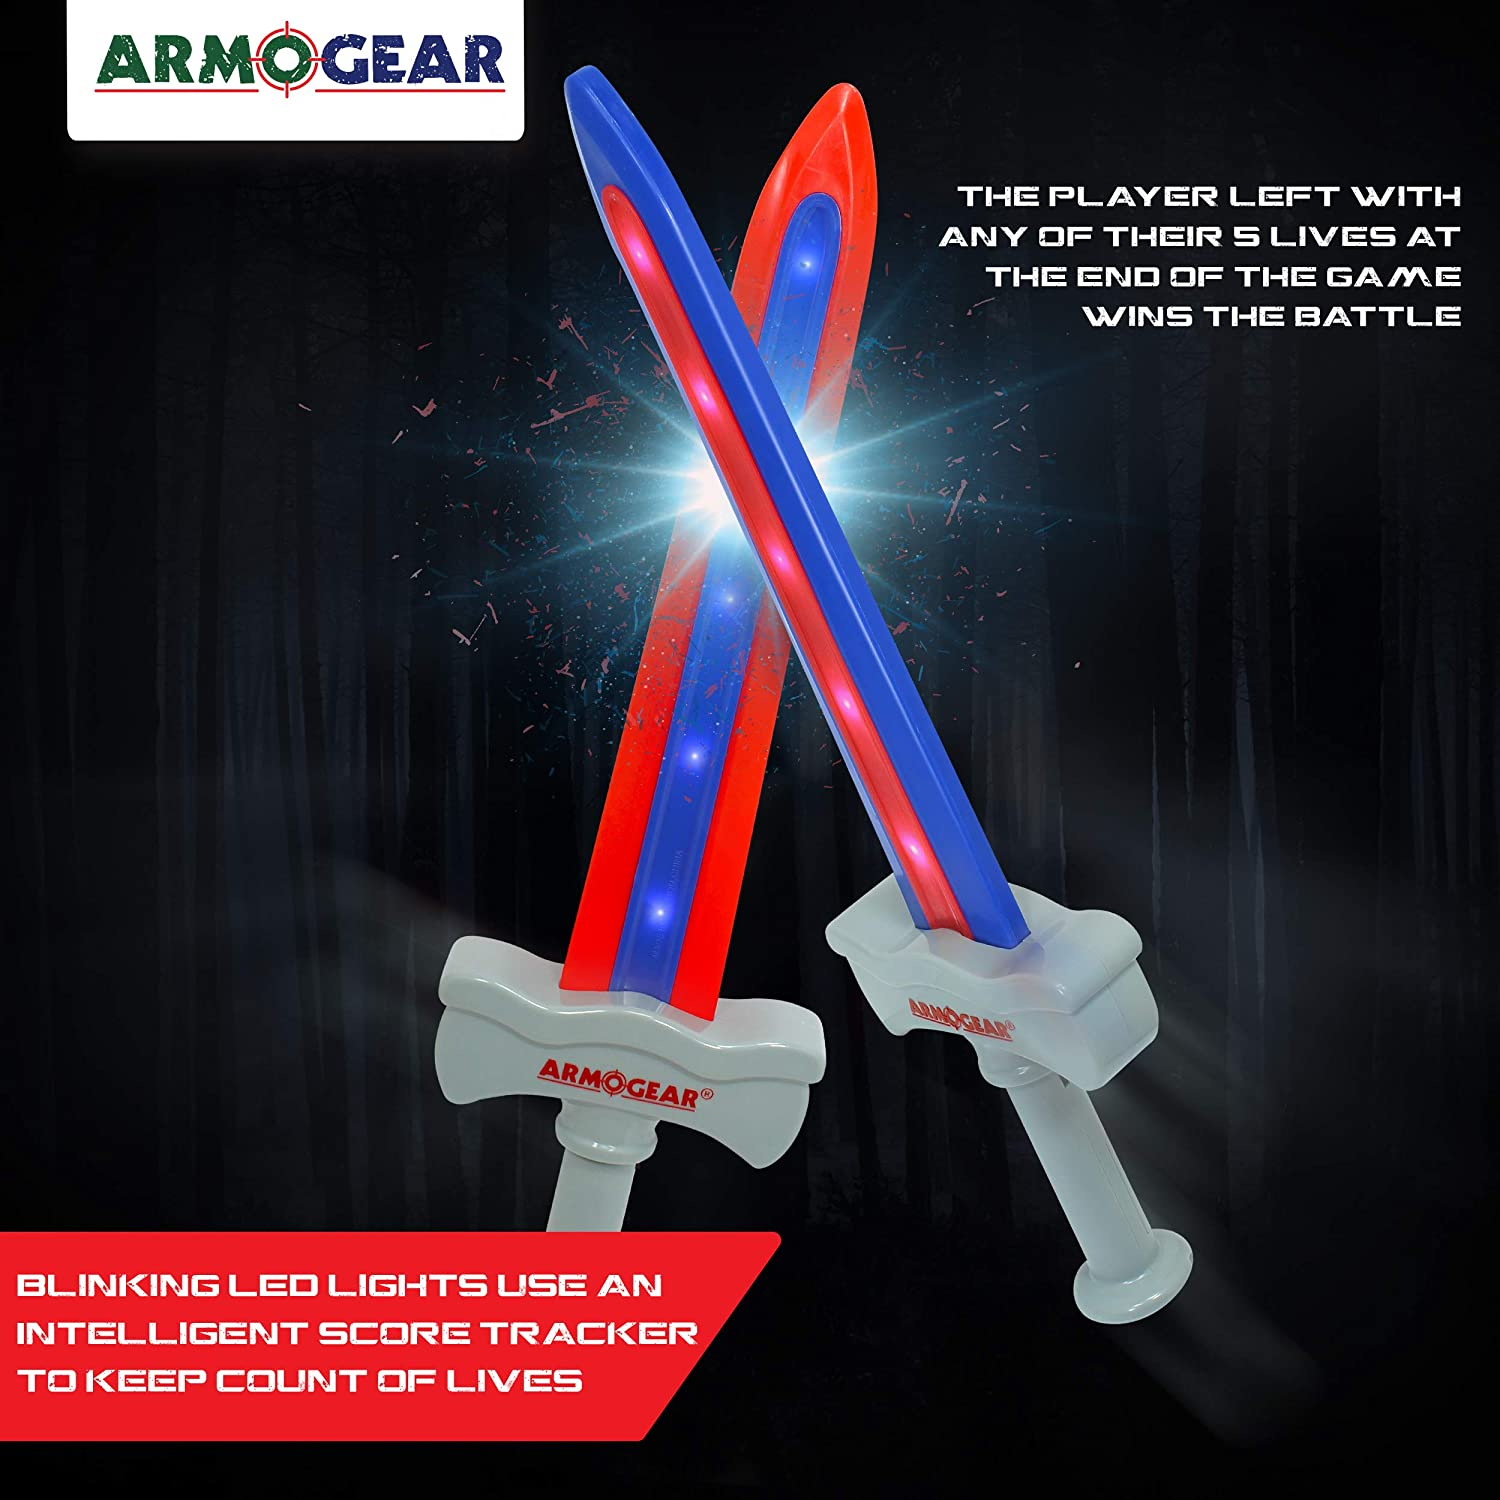 ArmoGear Kids Toy Sword Battle Electronic Game - Contains 2 Interactive Play Swords – LED Lights, Sound Effects & Intelligent Score Tracker - 100% ...